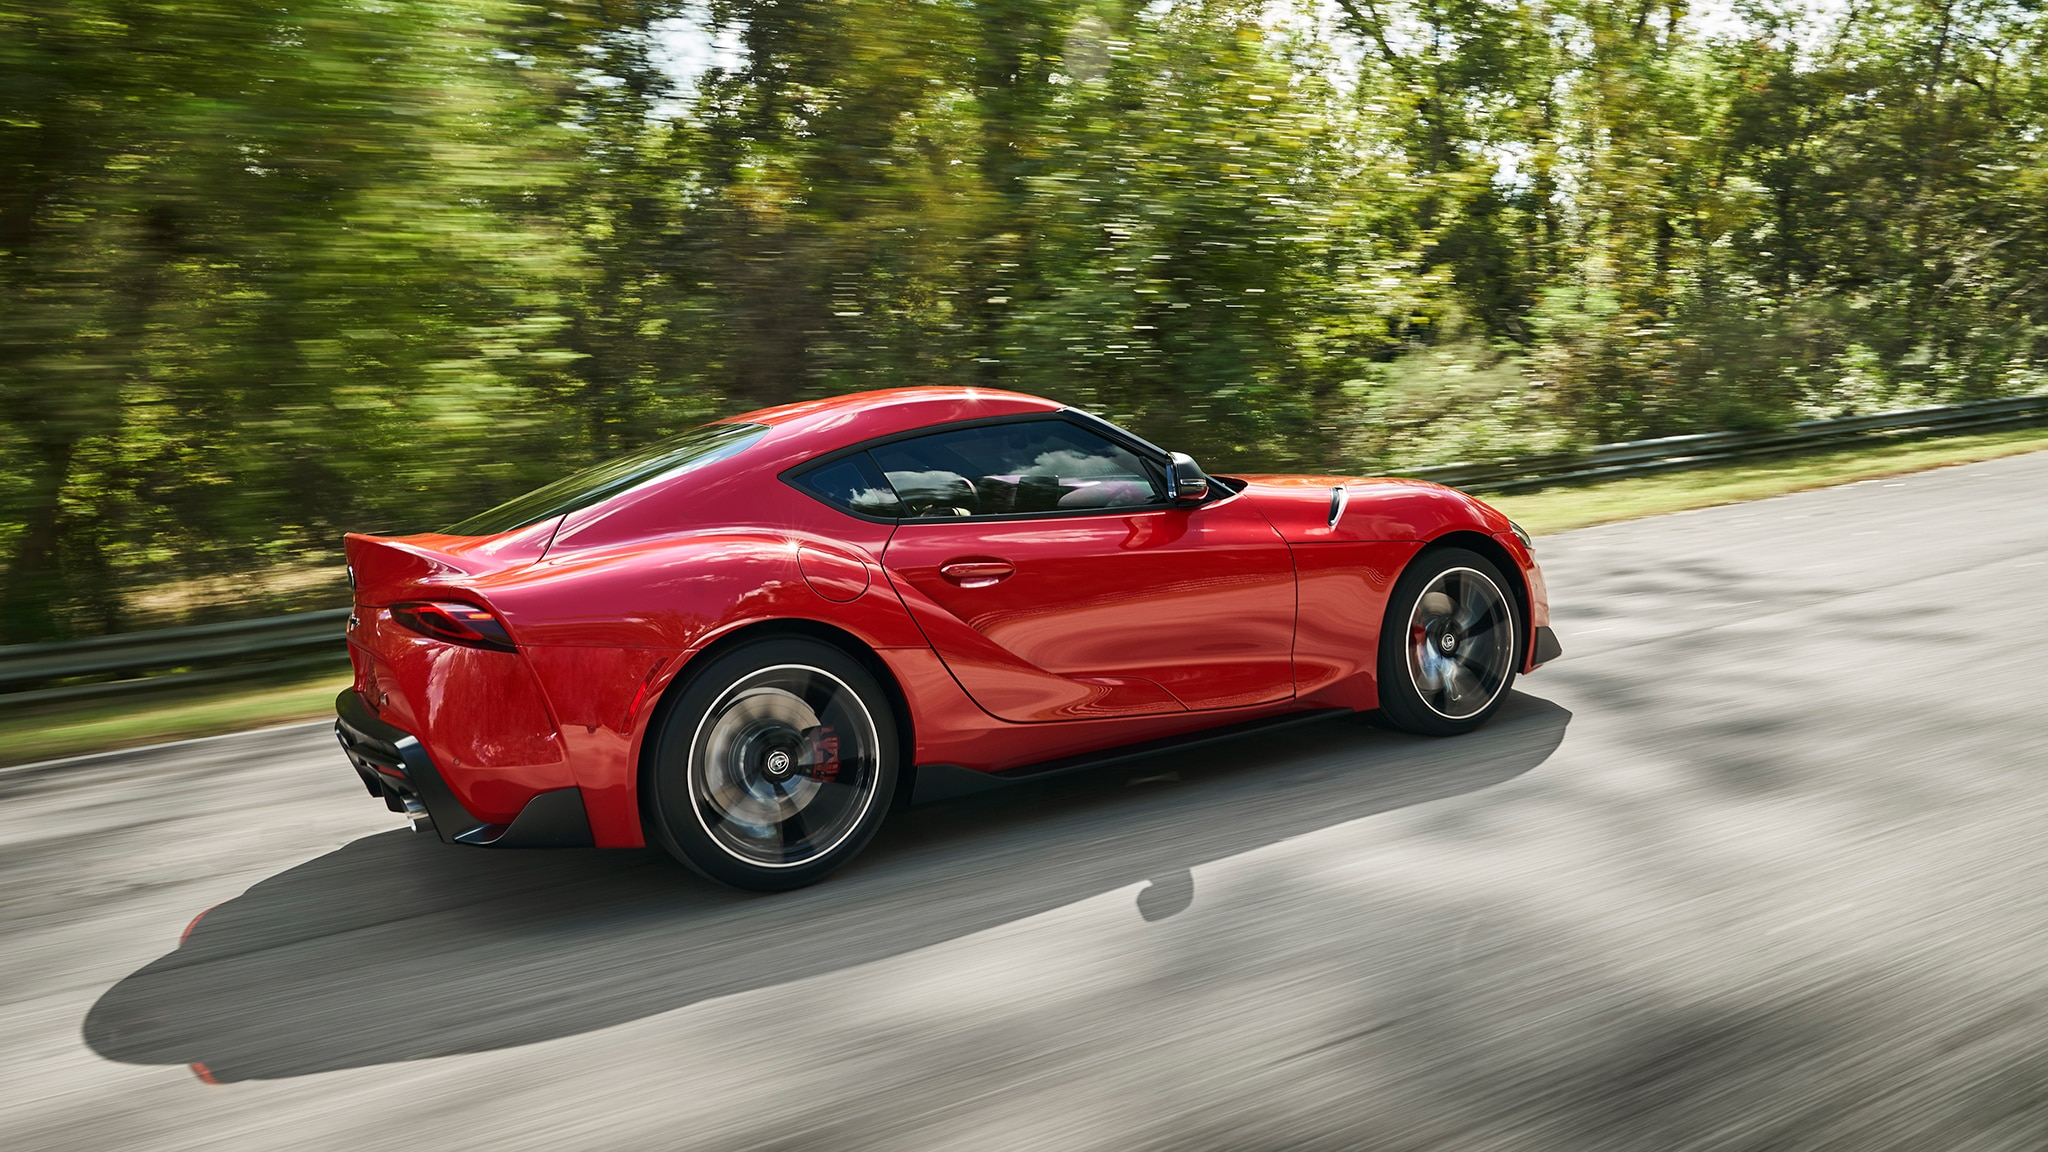 2020 Toyota Supra Official Info: Everything You Want to ...